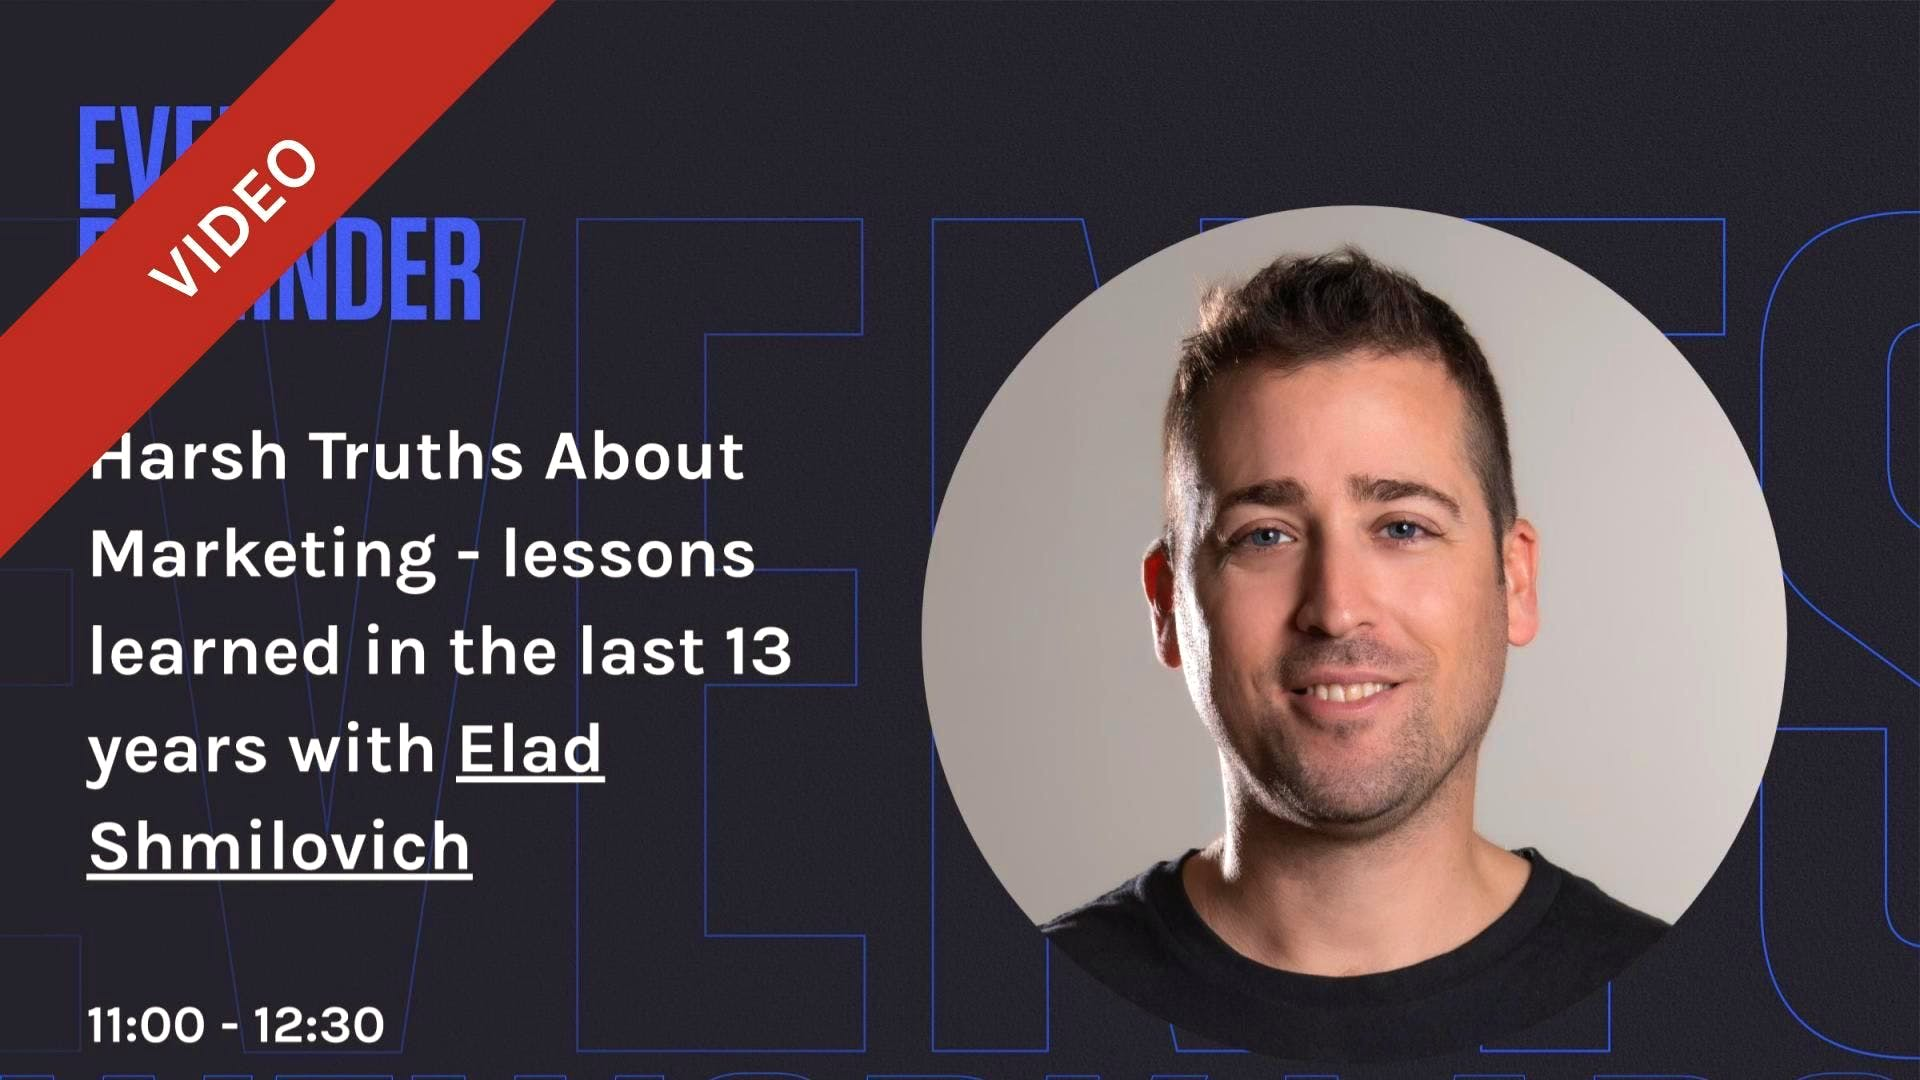 Harsh Truths About Marketing for SMBs - lessons learned in the last 13 years with Elad Shmilovich (Hebrew)